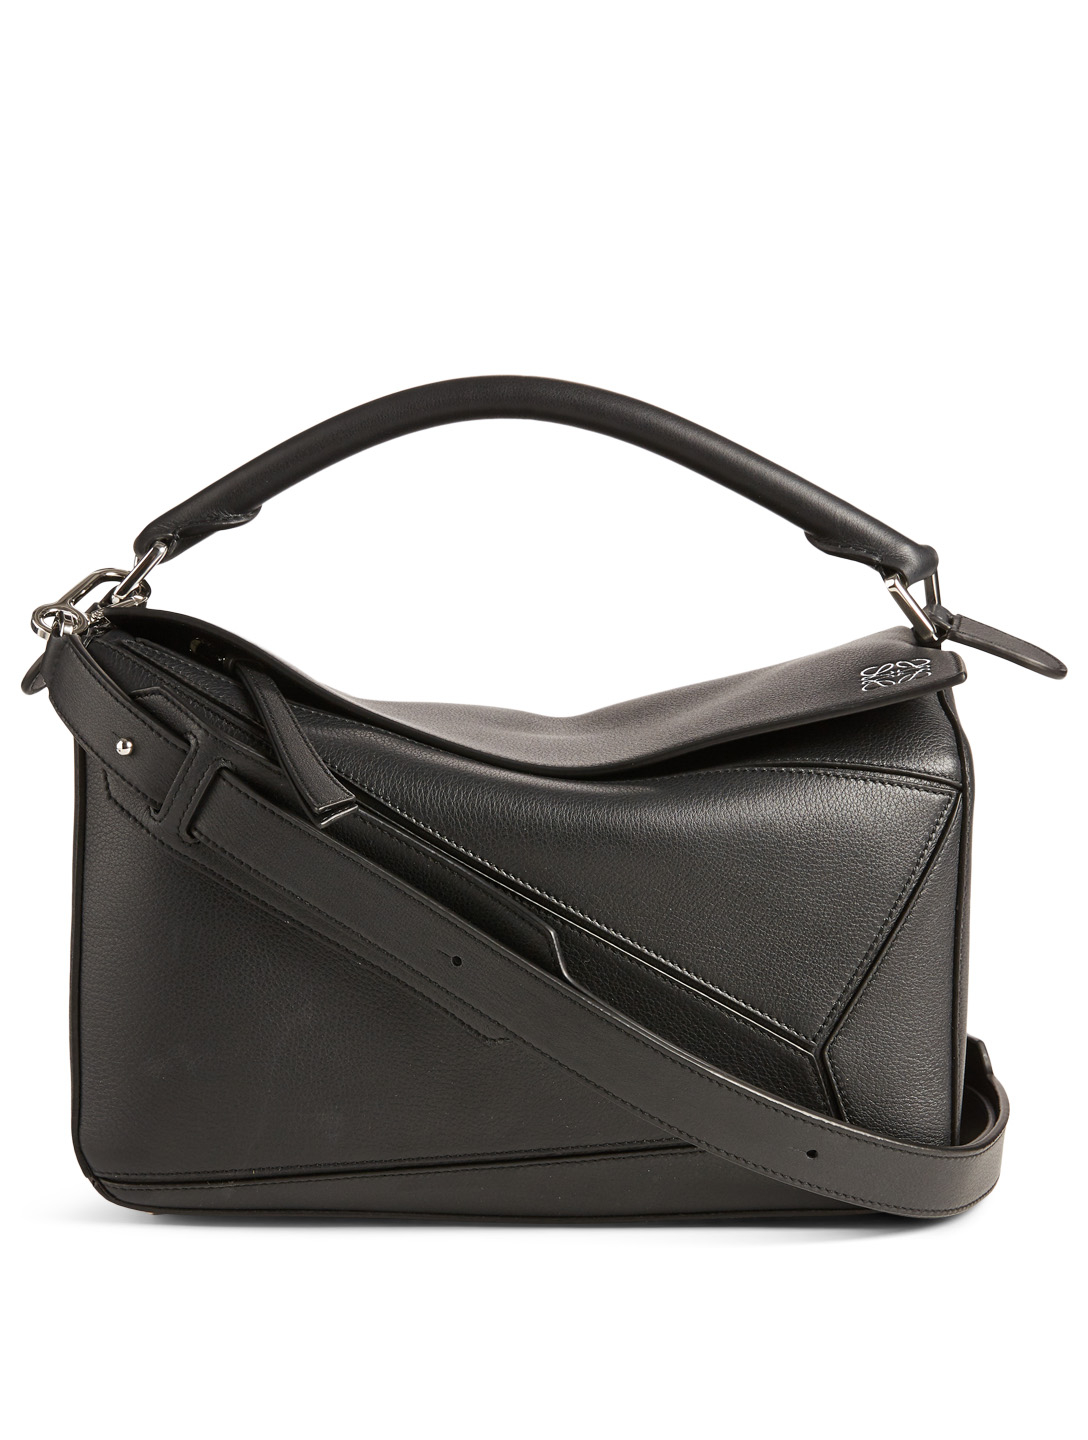 LOEWE Puzzle Leather Bag Women's Black